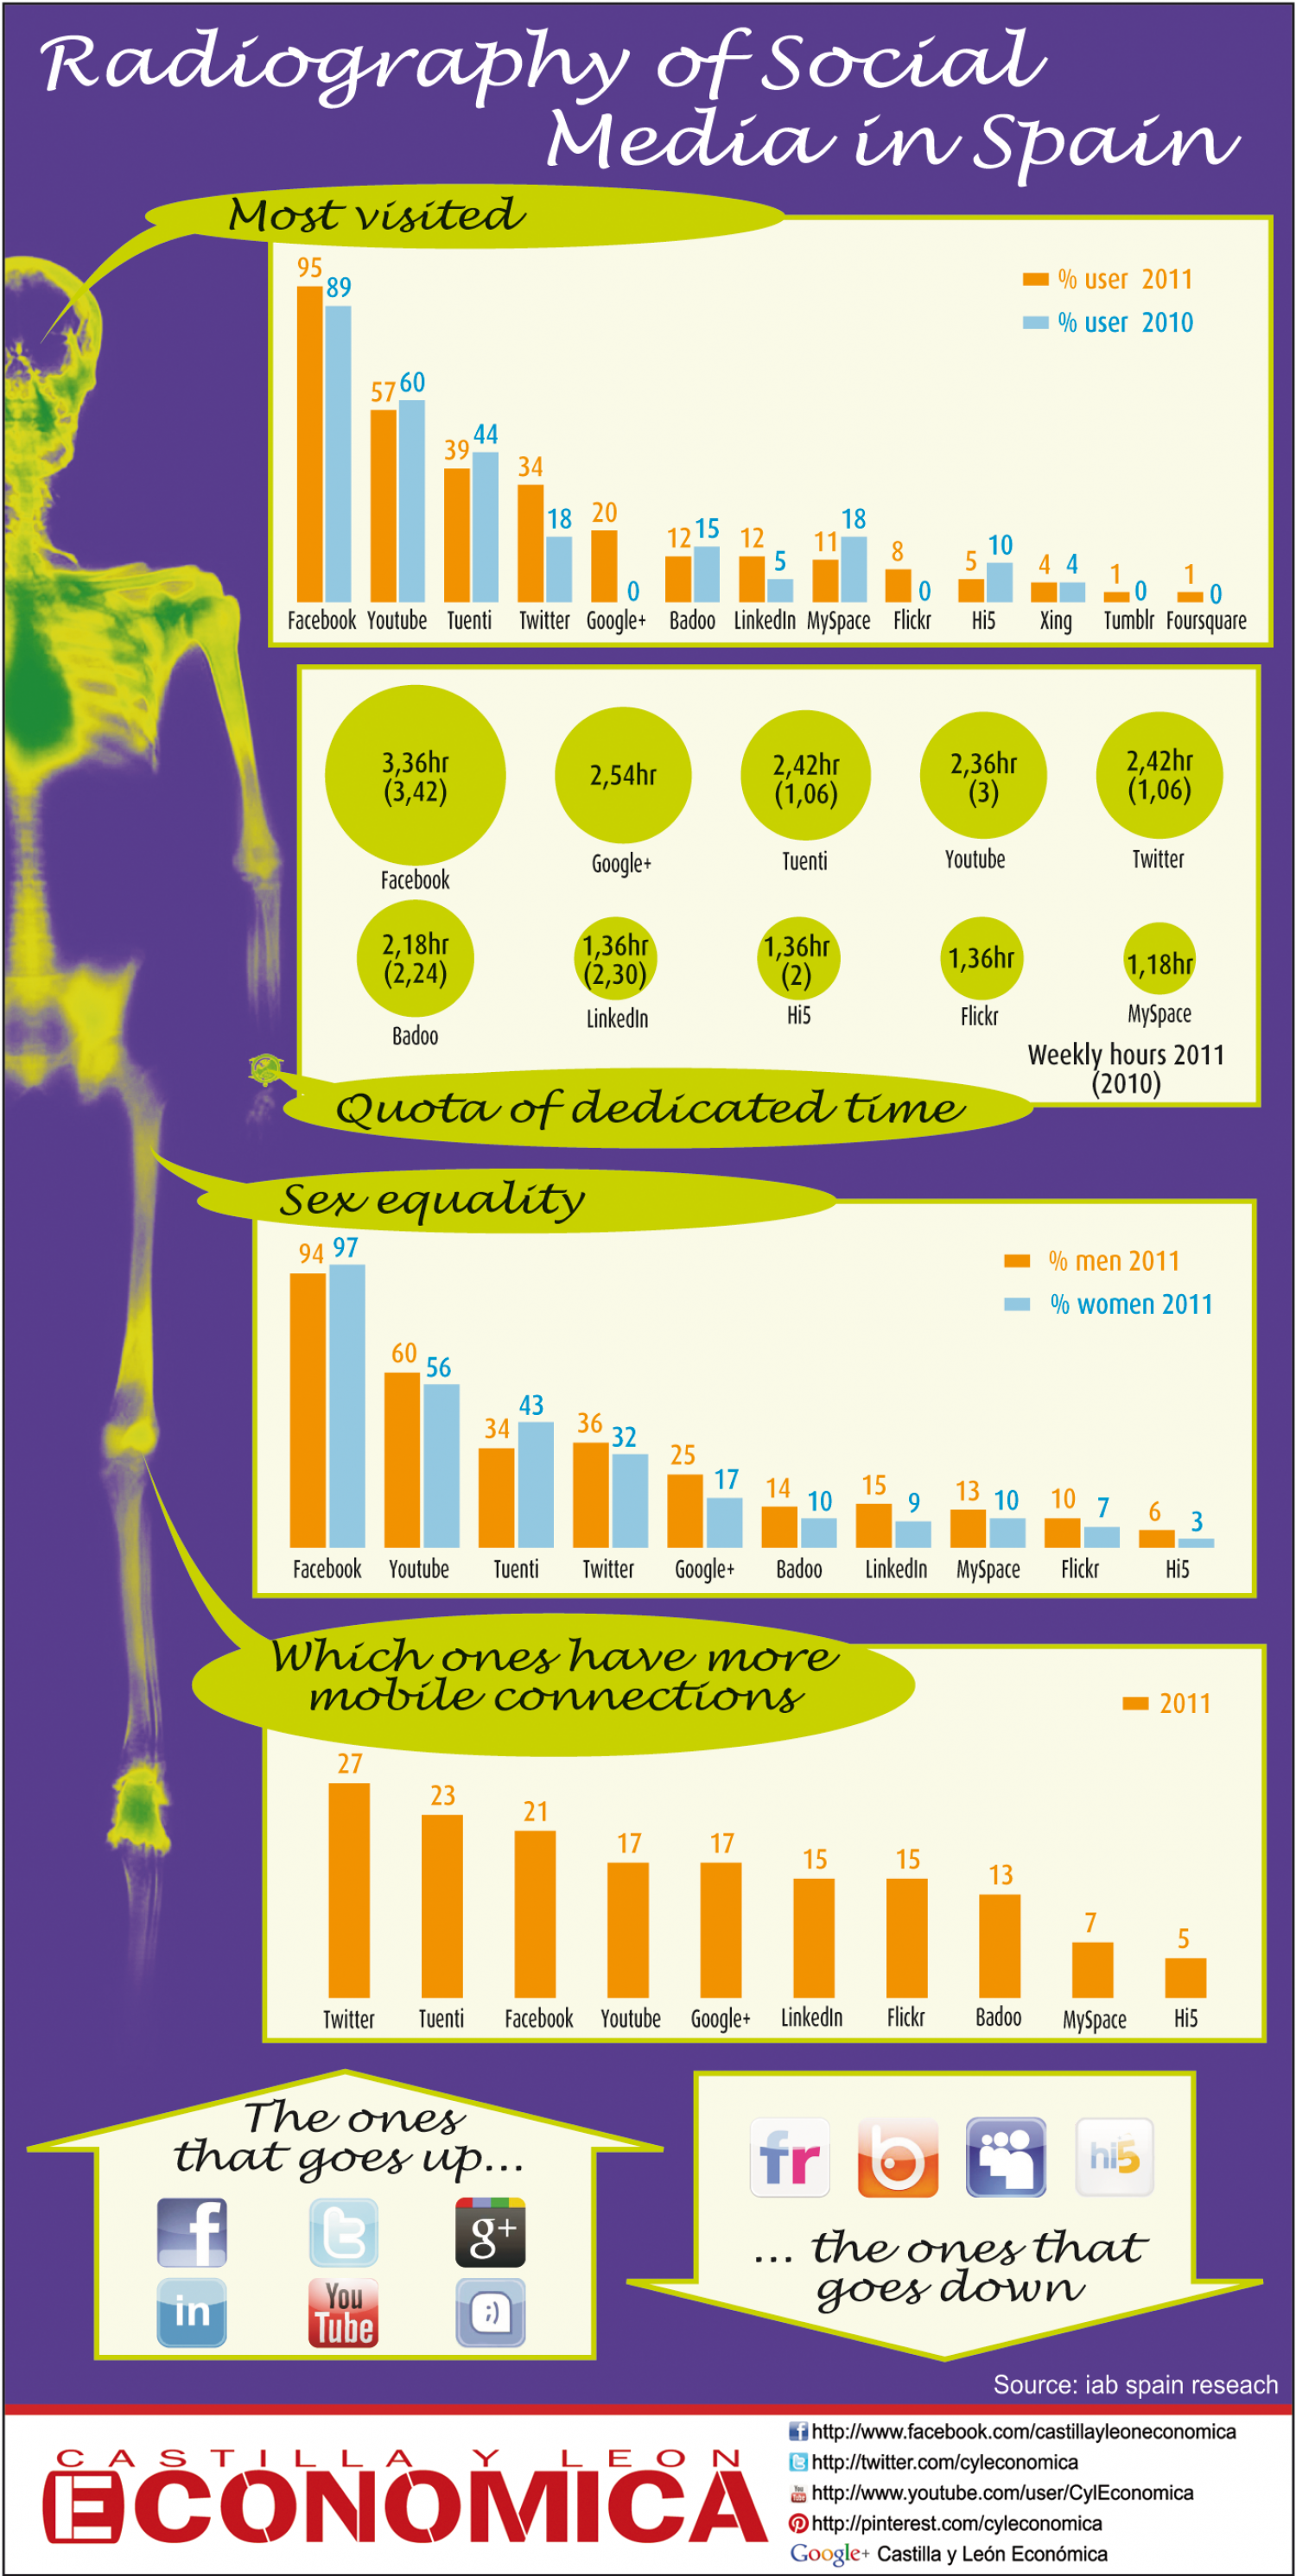 Radiography of Social Media in Spain Infographic